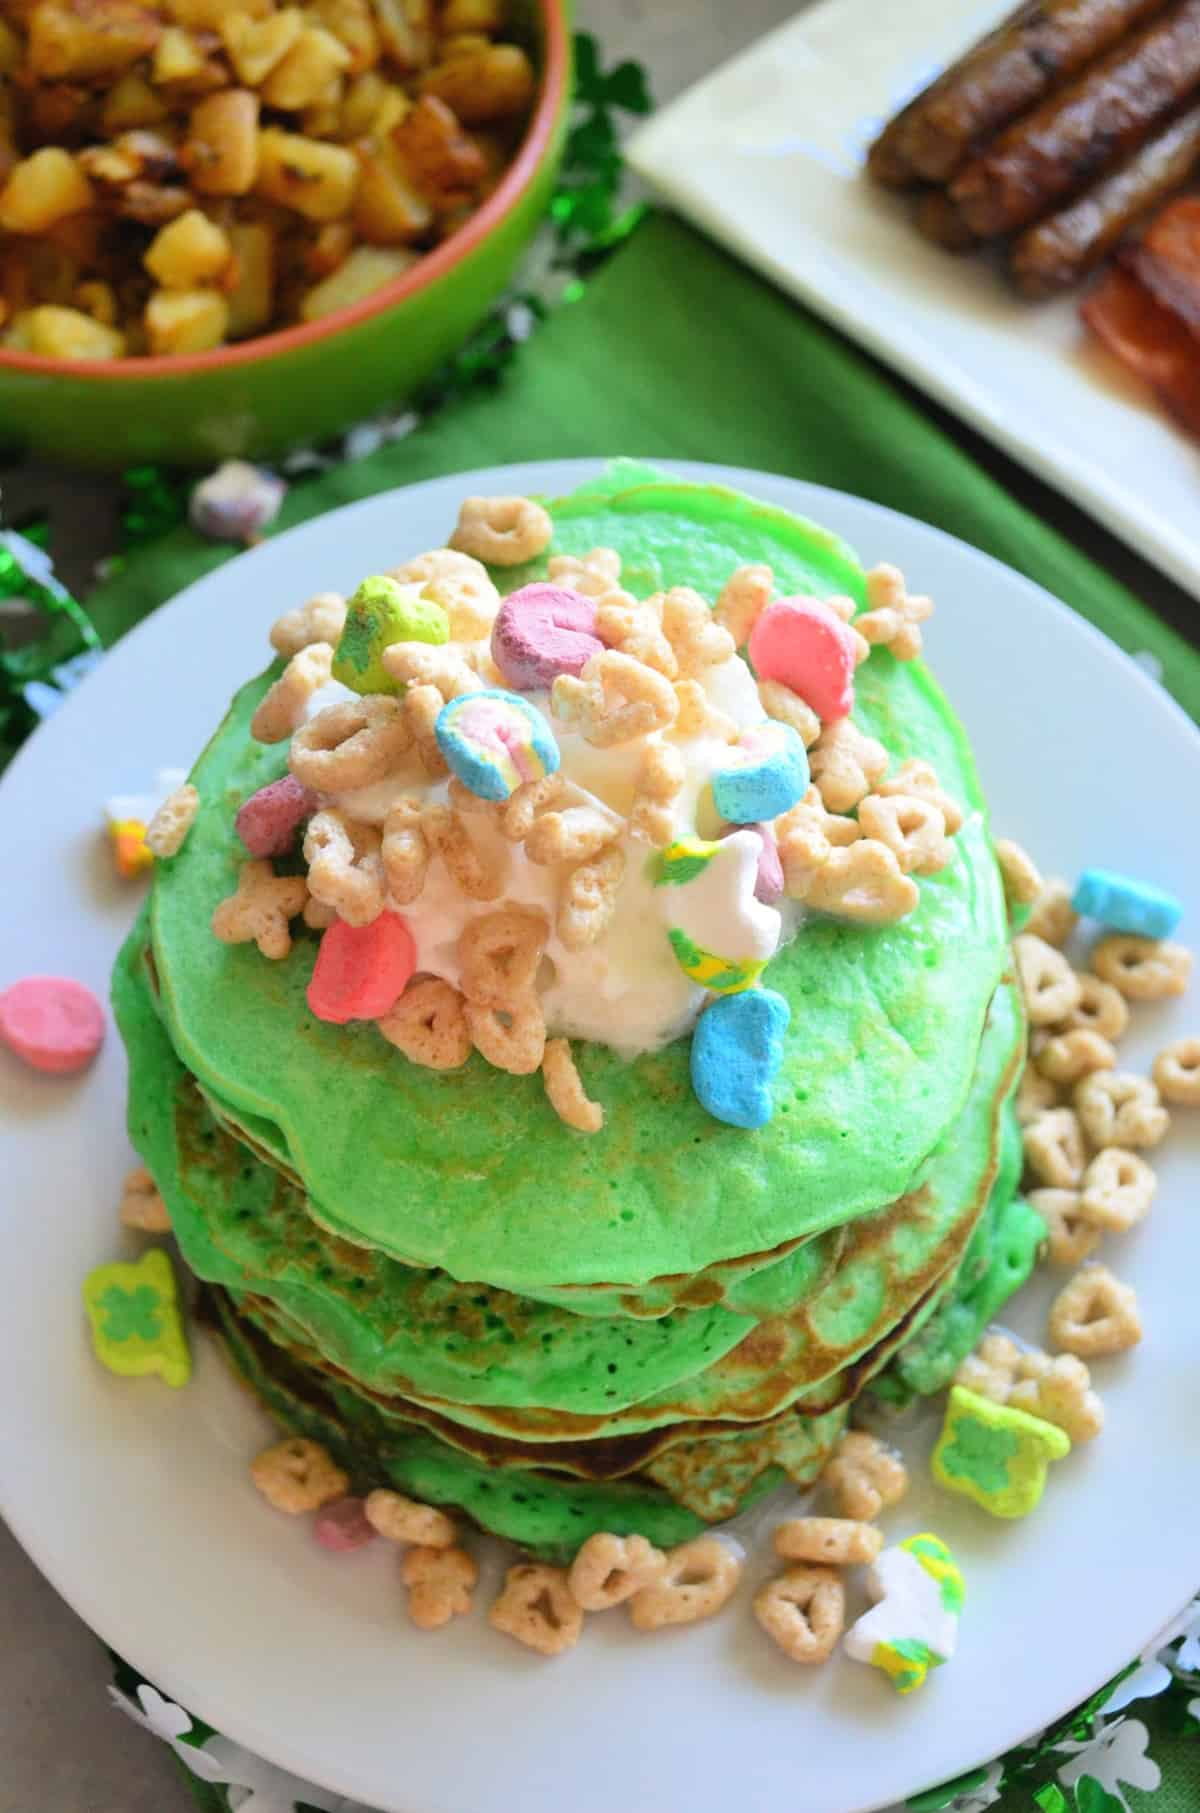 top view of stacked green pancakes topped with melted marshmallow and lucky charms on white plate.